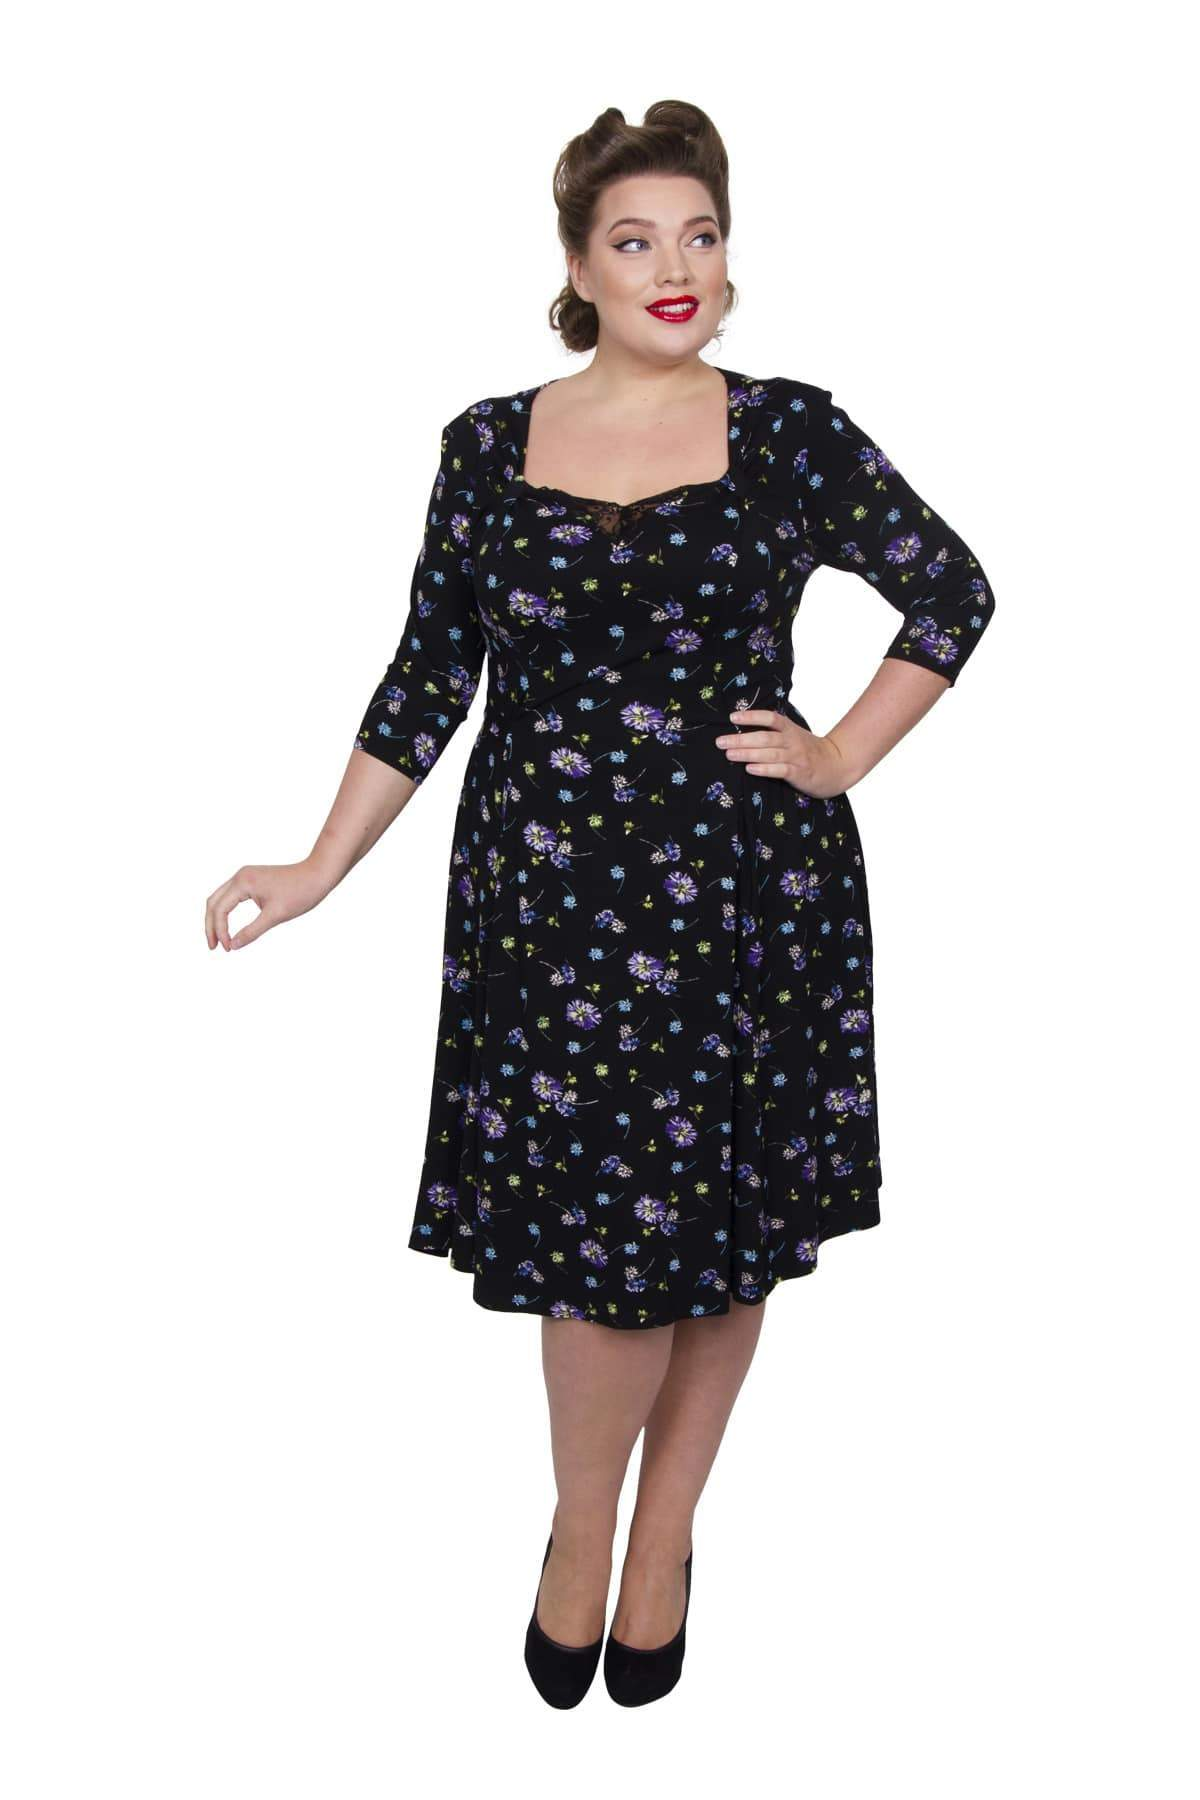 1940s Dresses and Clothing UK | 40s Shoes UK Daisy Print Sweetheart Tab 40s Dress - BLKLILWHT  14 �60.00 AT vintagedancer.com